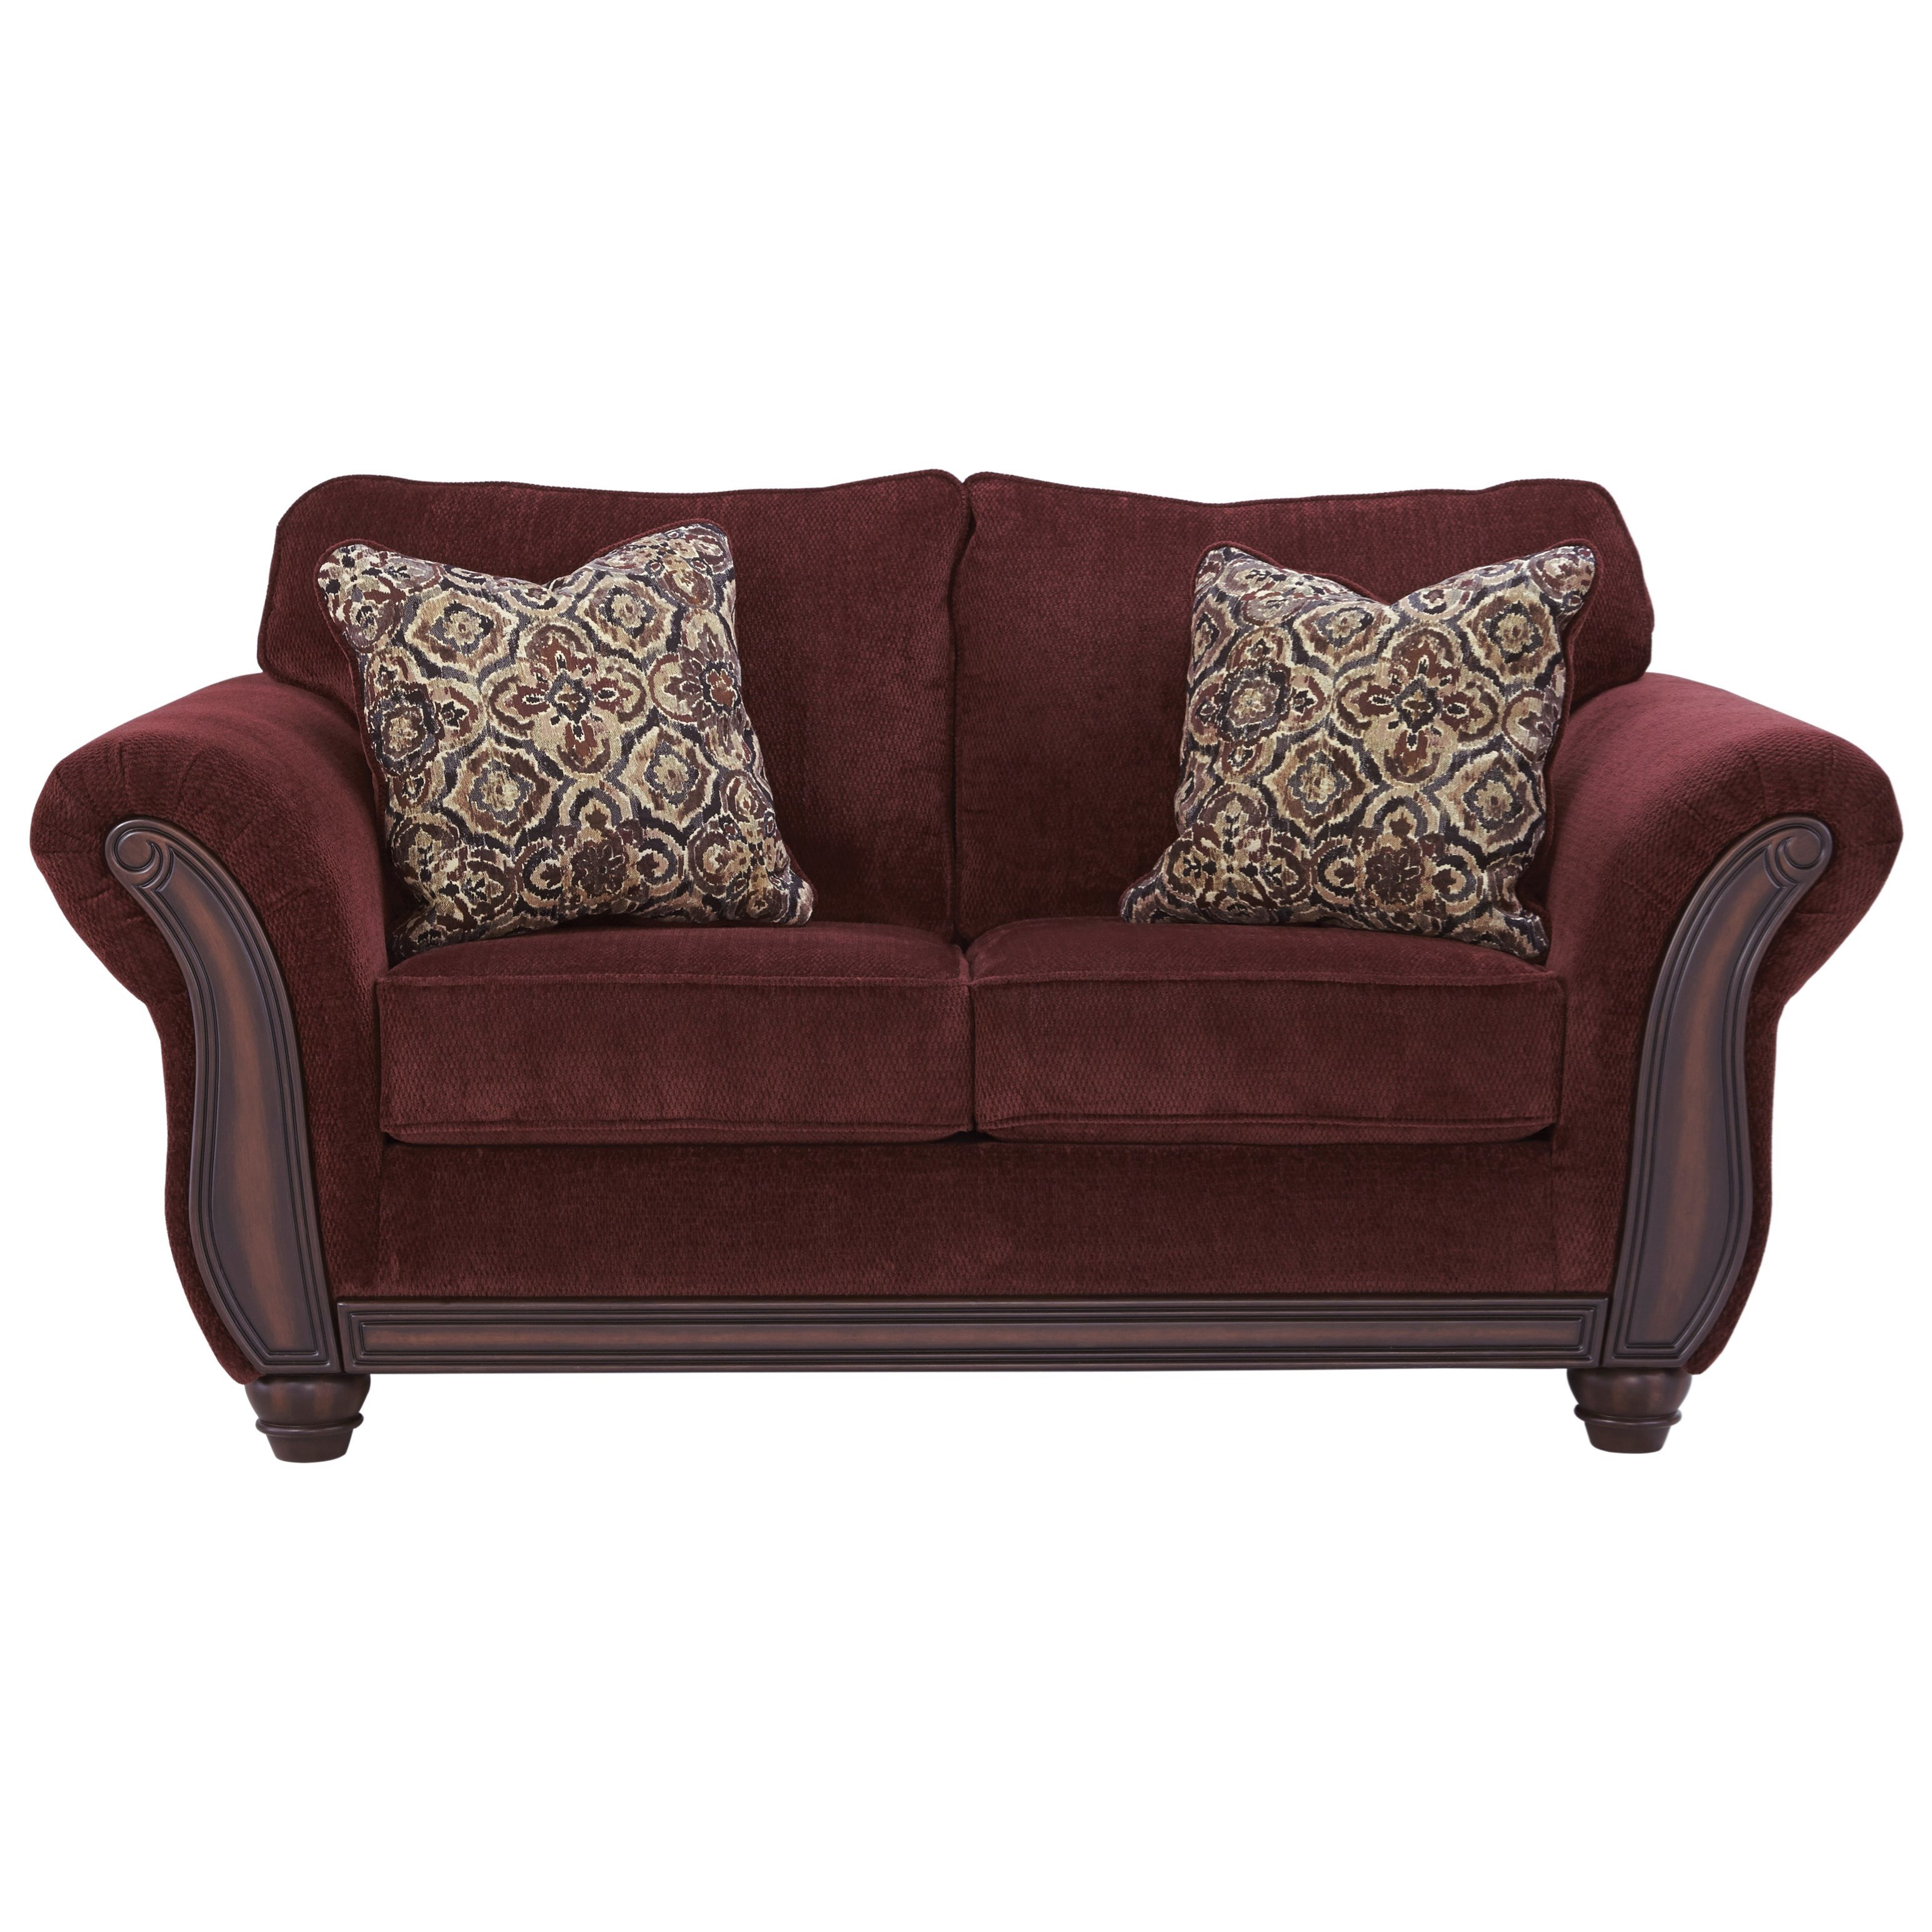 Signature Design by Ashley Chesterbrook Loveseat - Item Number: 8810235